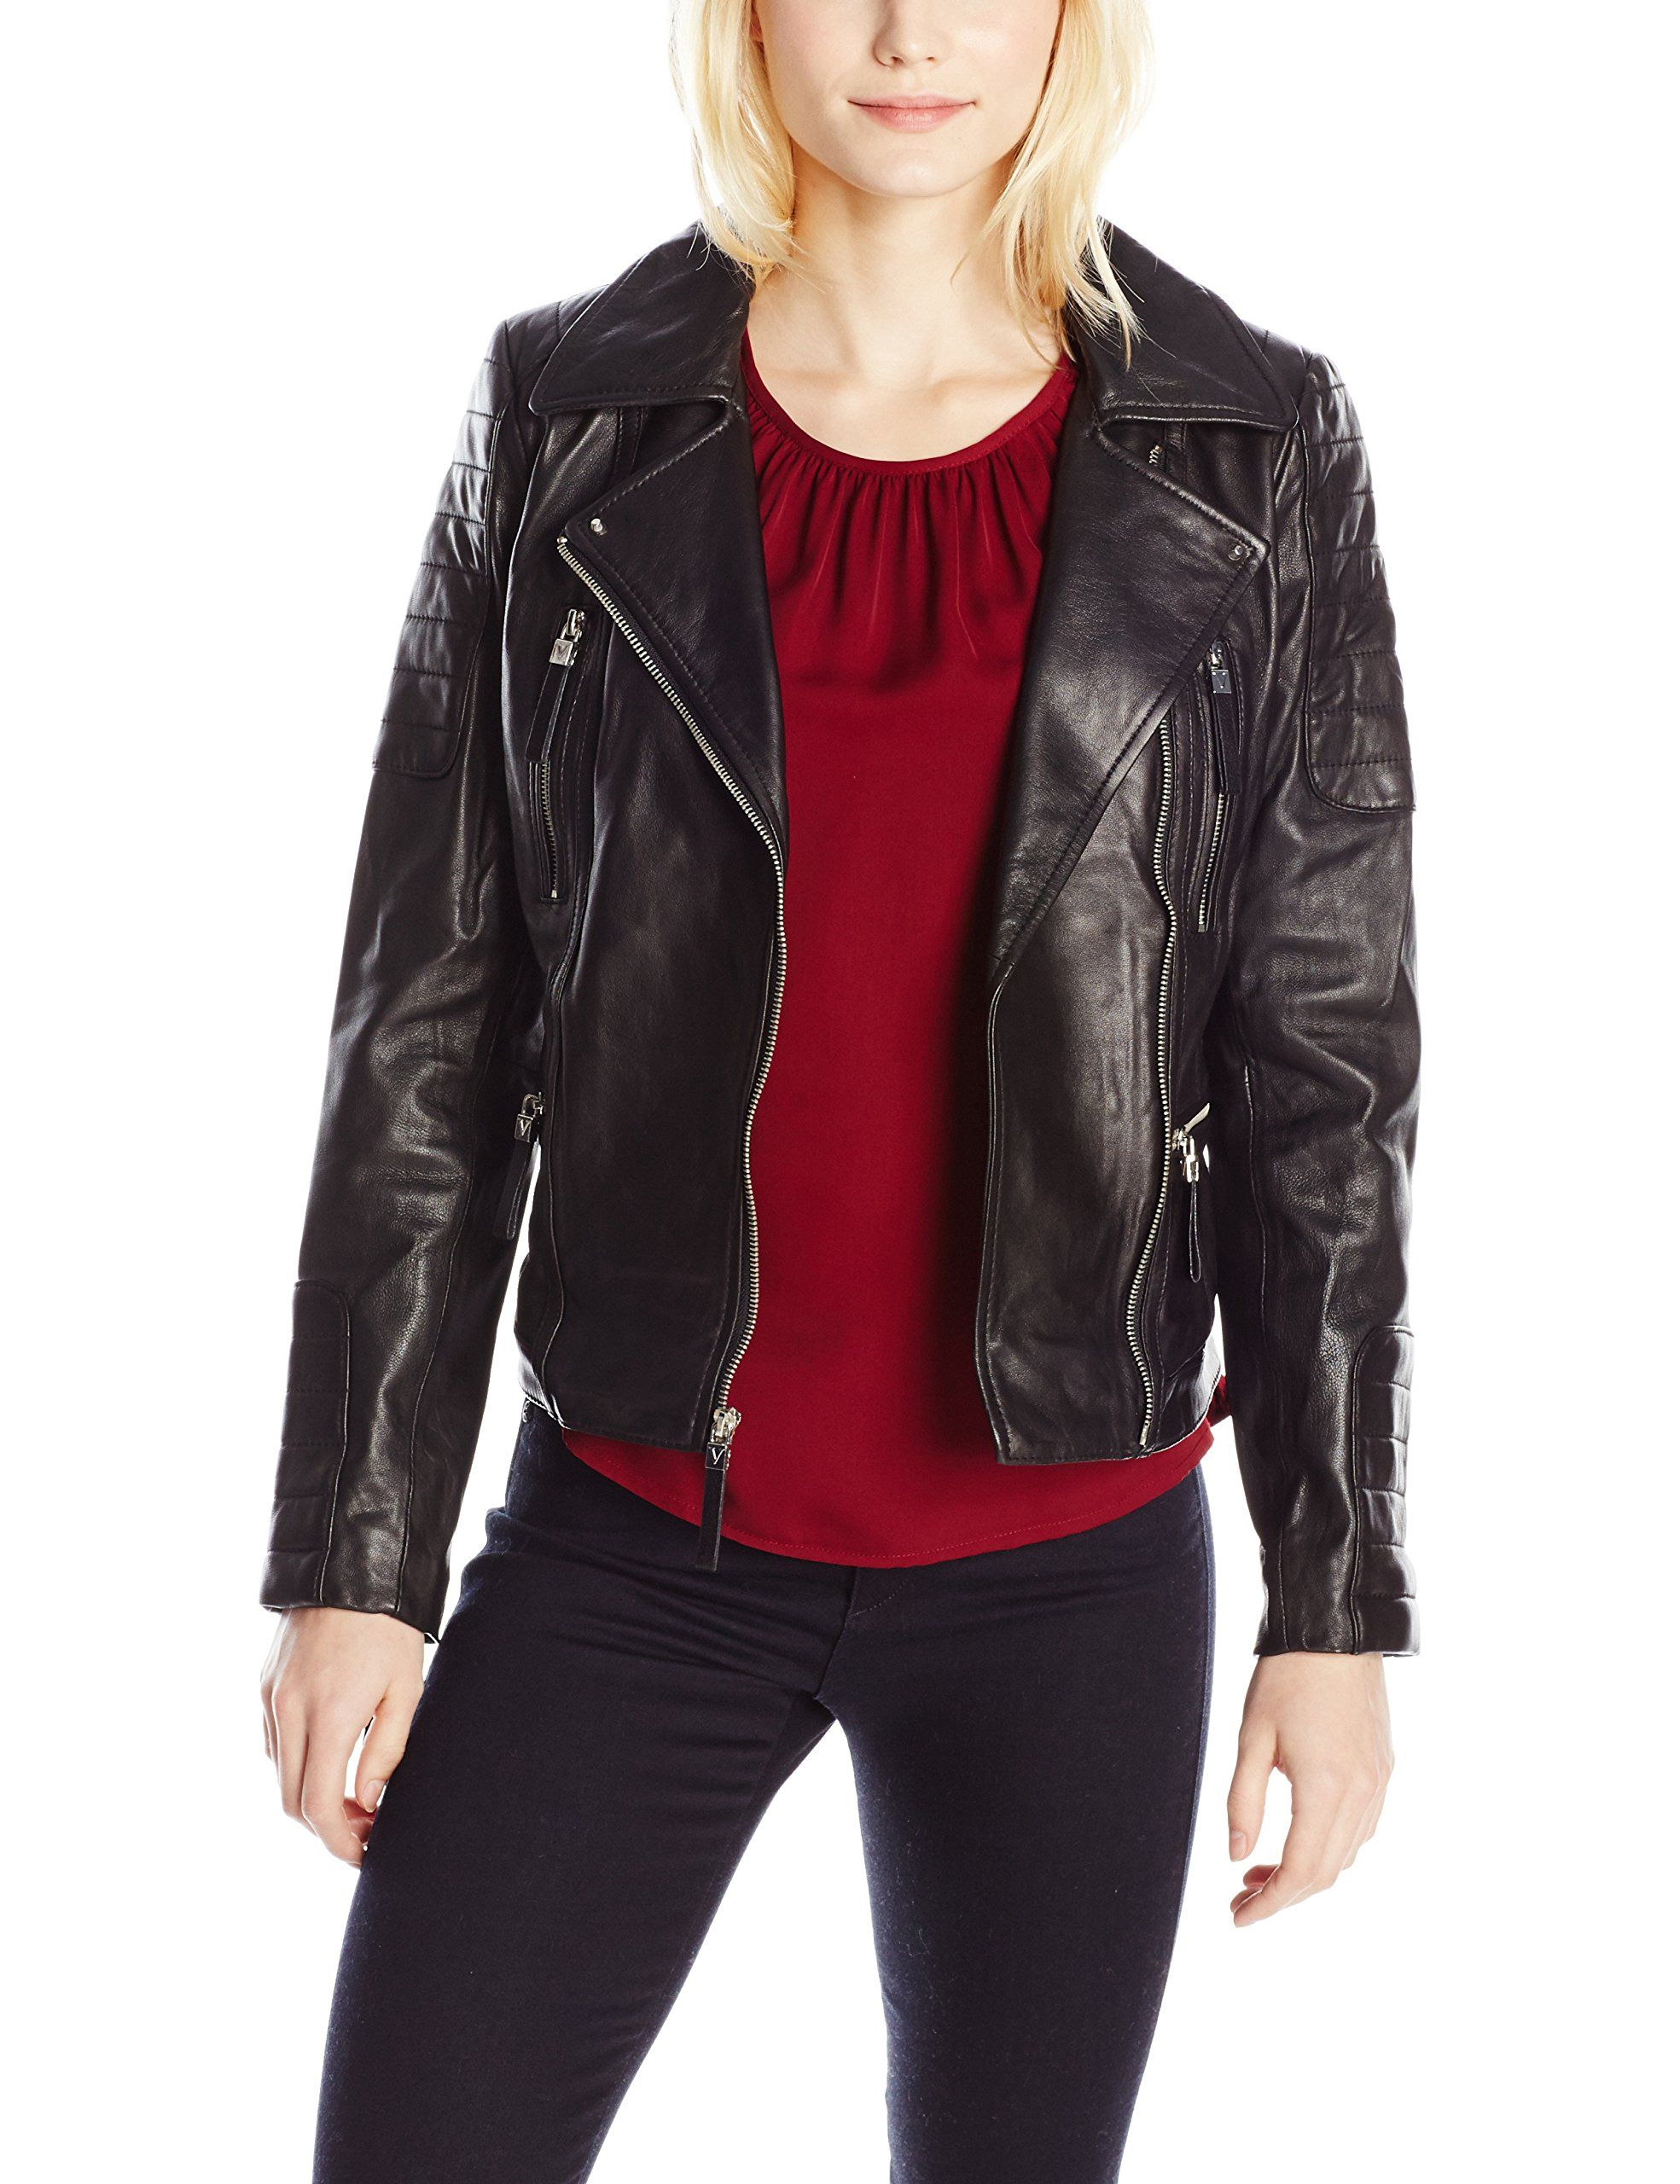 Vince Camuto Womens Leather Moto Jacket Black Medium You Can Find More Details By Visiting T Coats For Women Leather Moto Jacket Womens Leather Moto Jacket [ 2560 x 1969 Pixel ]